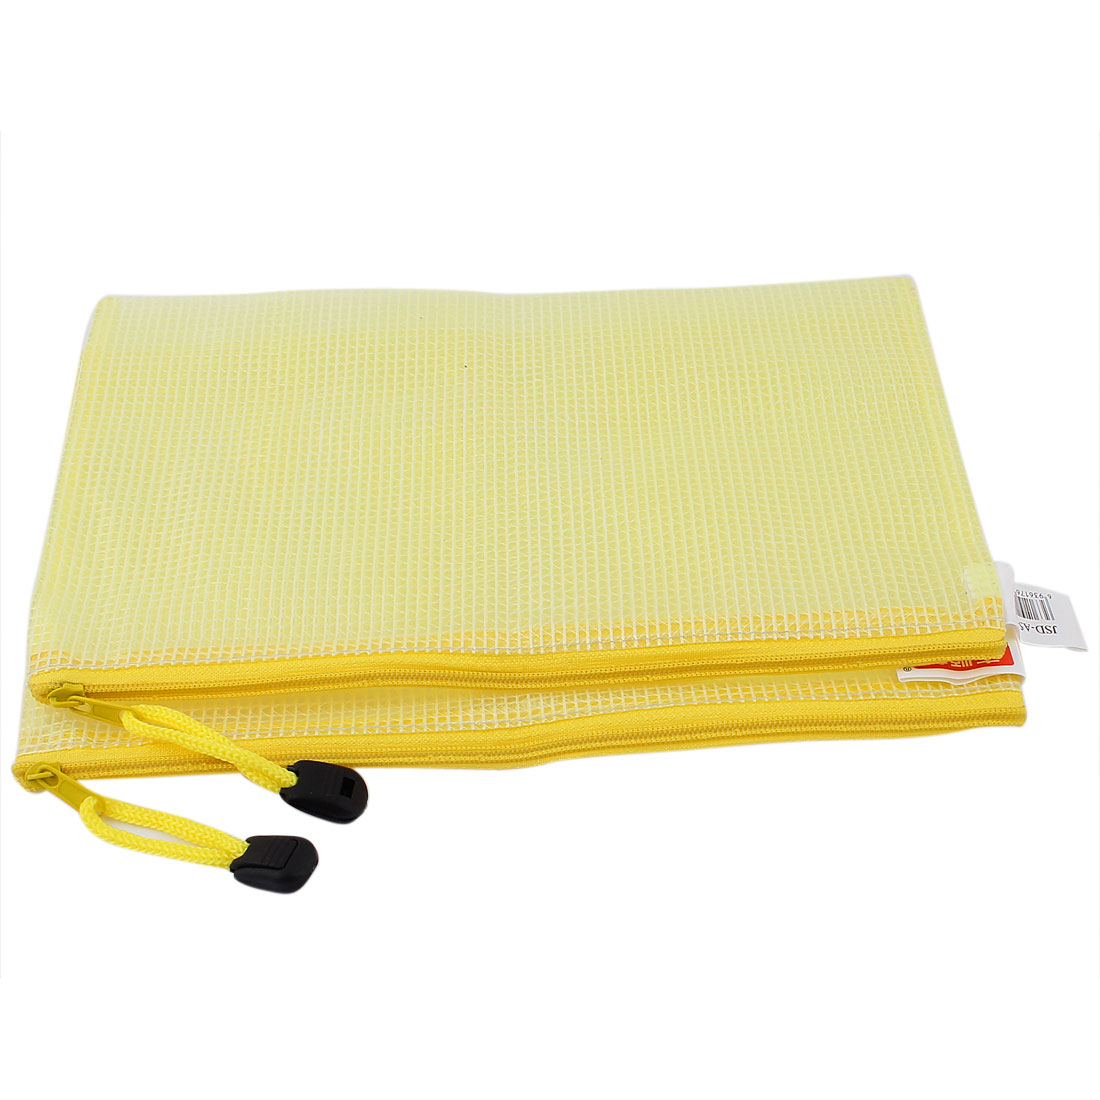 Zippered PVC Mesh Checkbook ID A5 Document File Bag Holder Pouch Yellow 2pcs